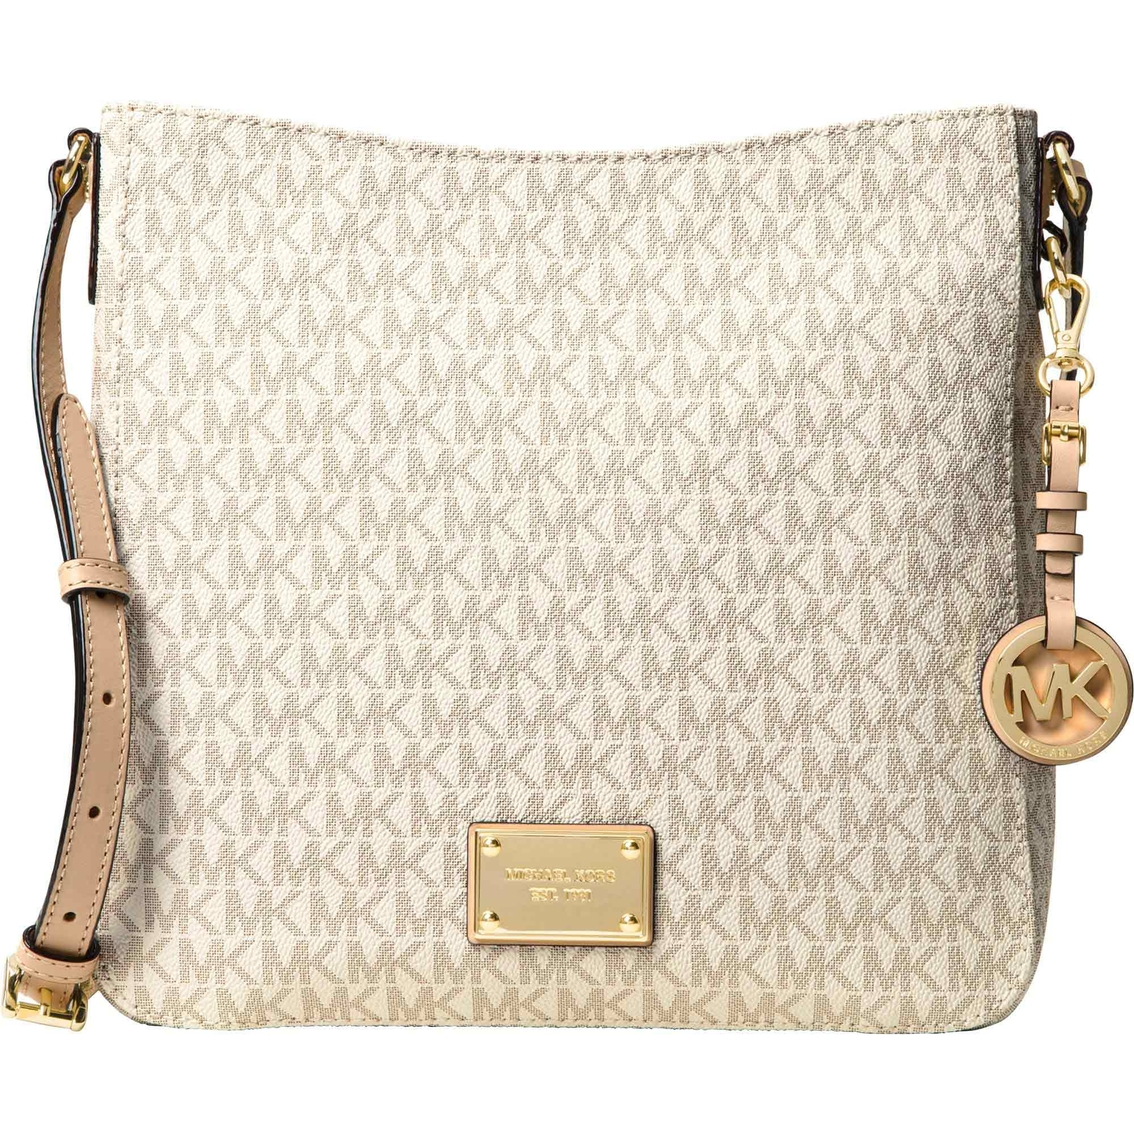 8d483d17ba1b Michael Kors Jet Set Travel Large Messenger Handbag